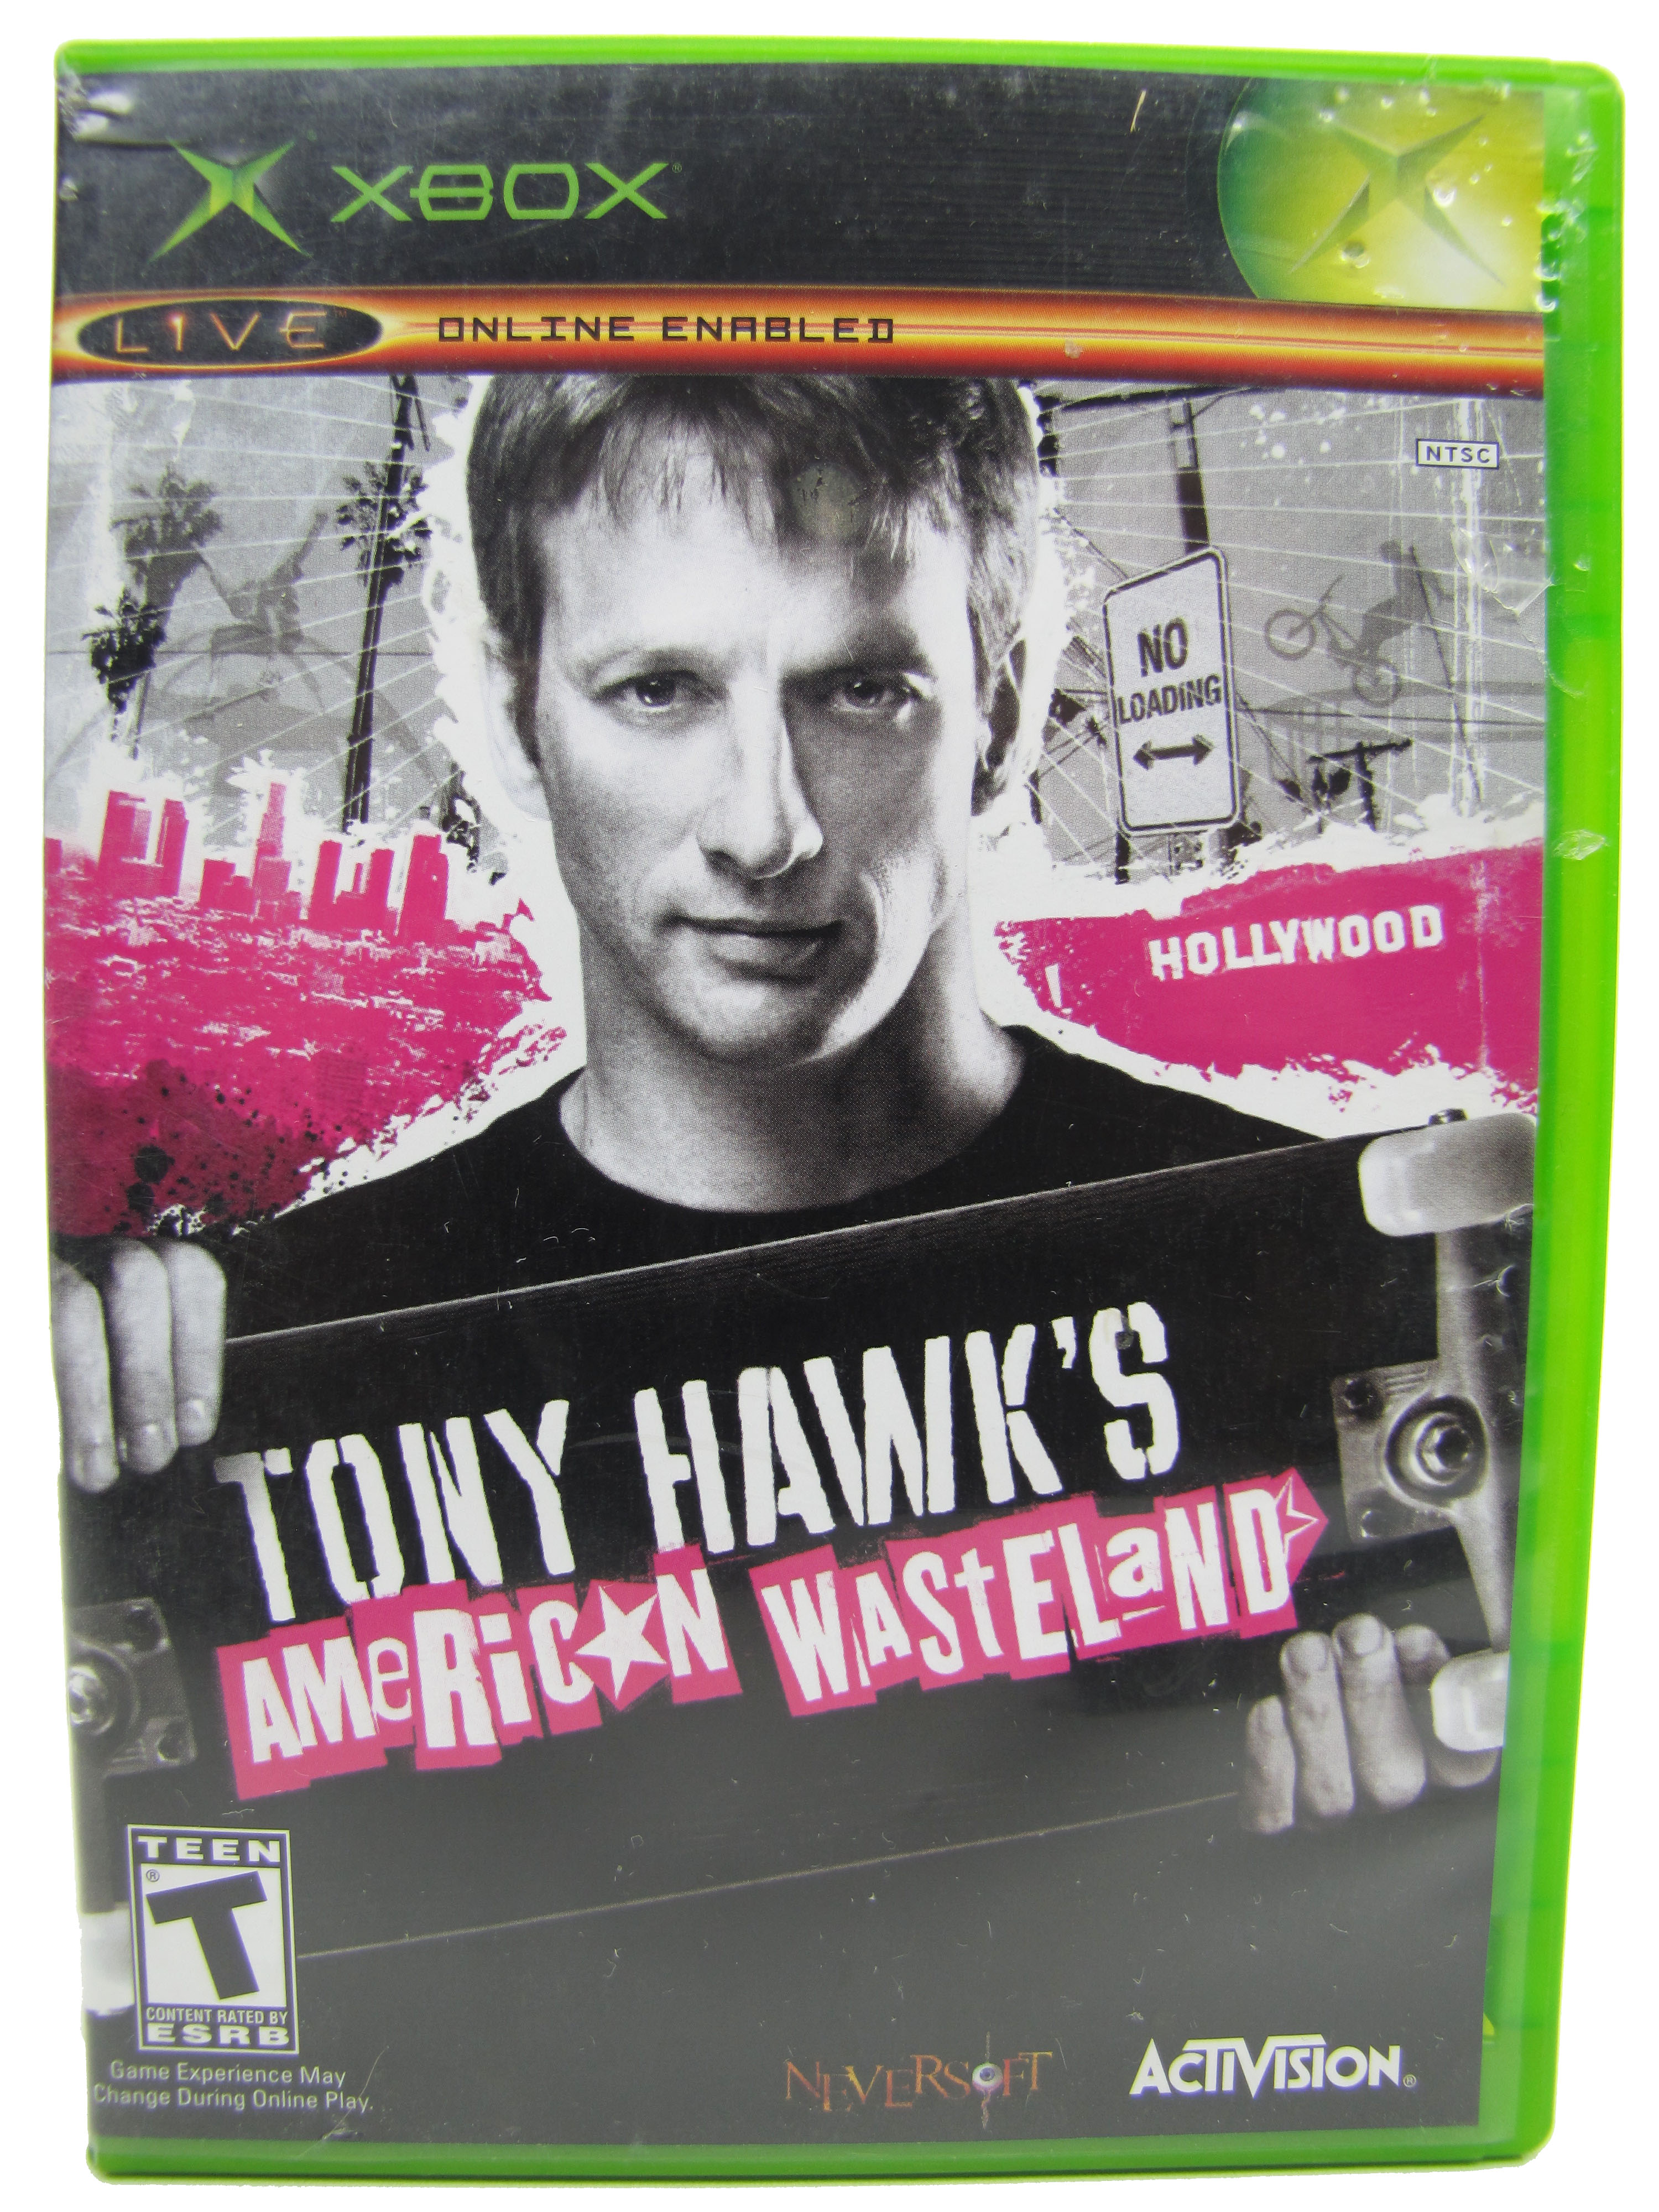 XBOX Tony Hawk's American Wasteland Complete - 2005